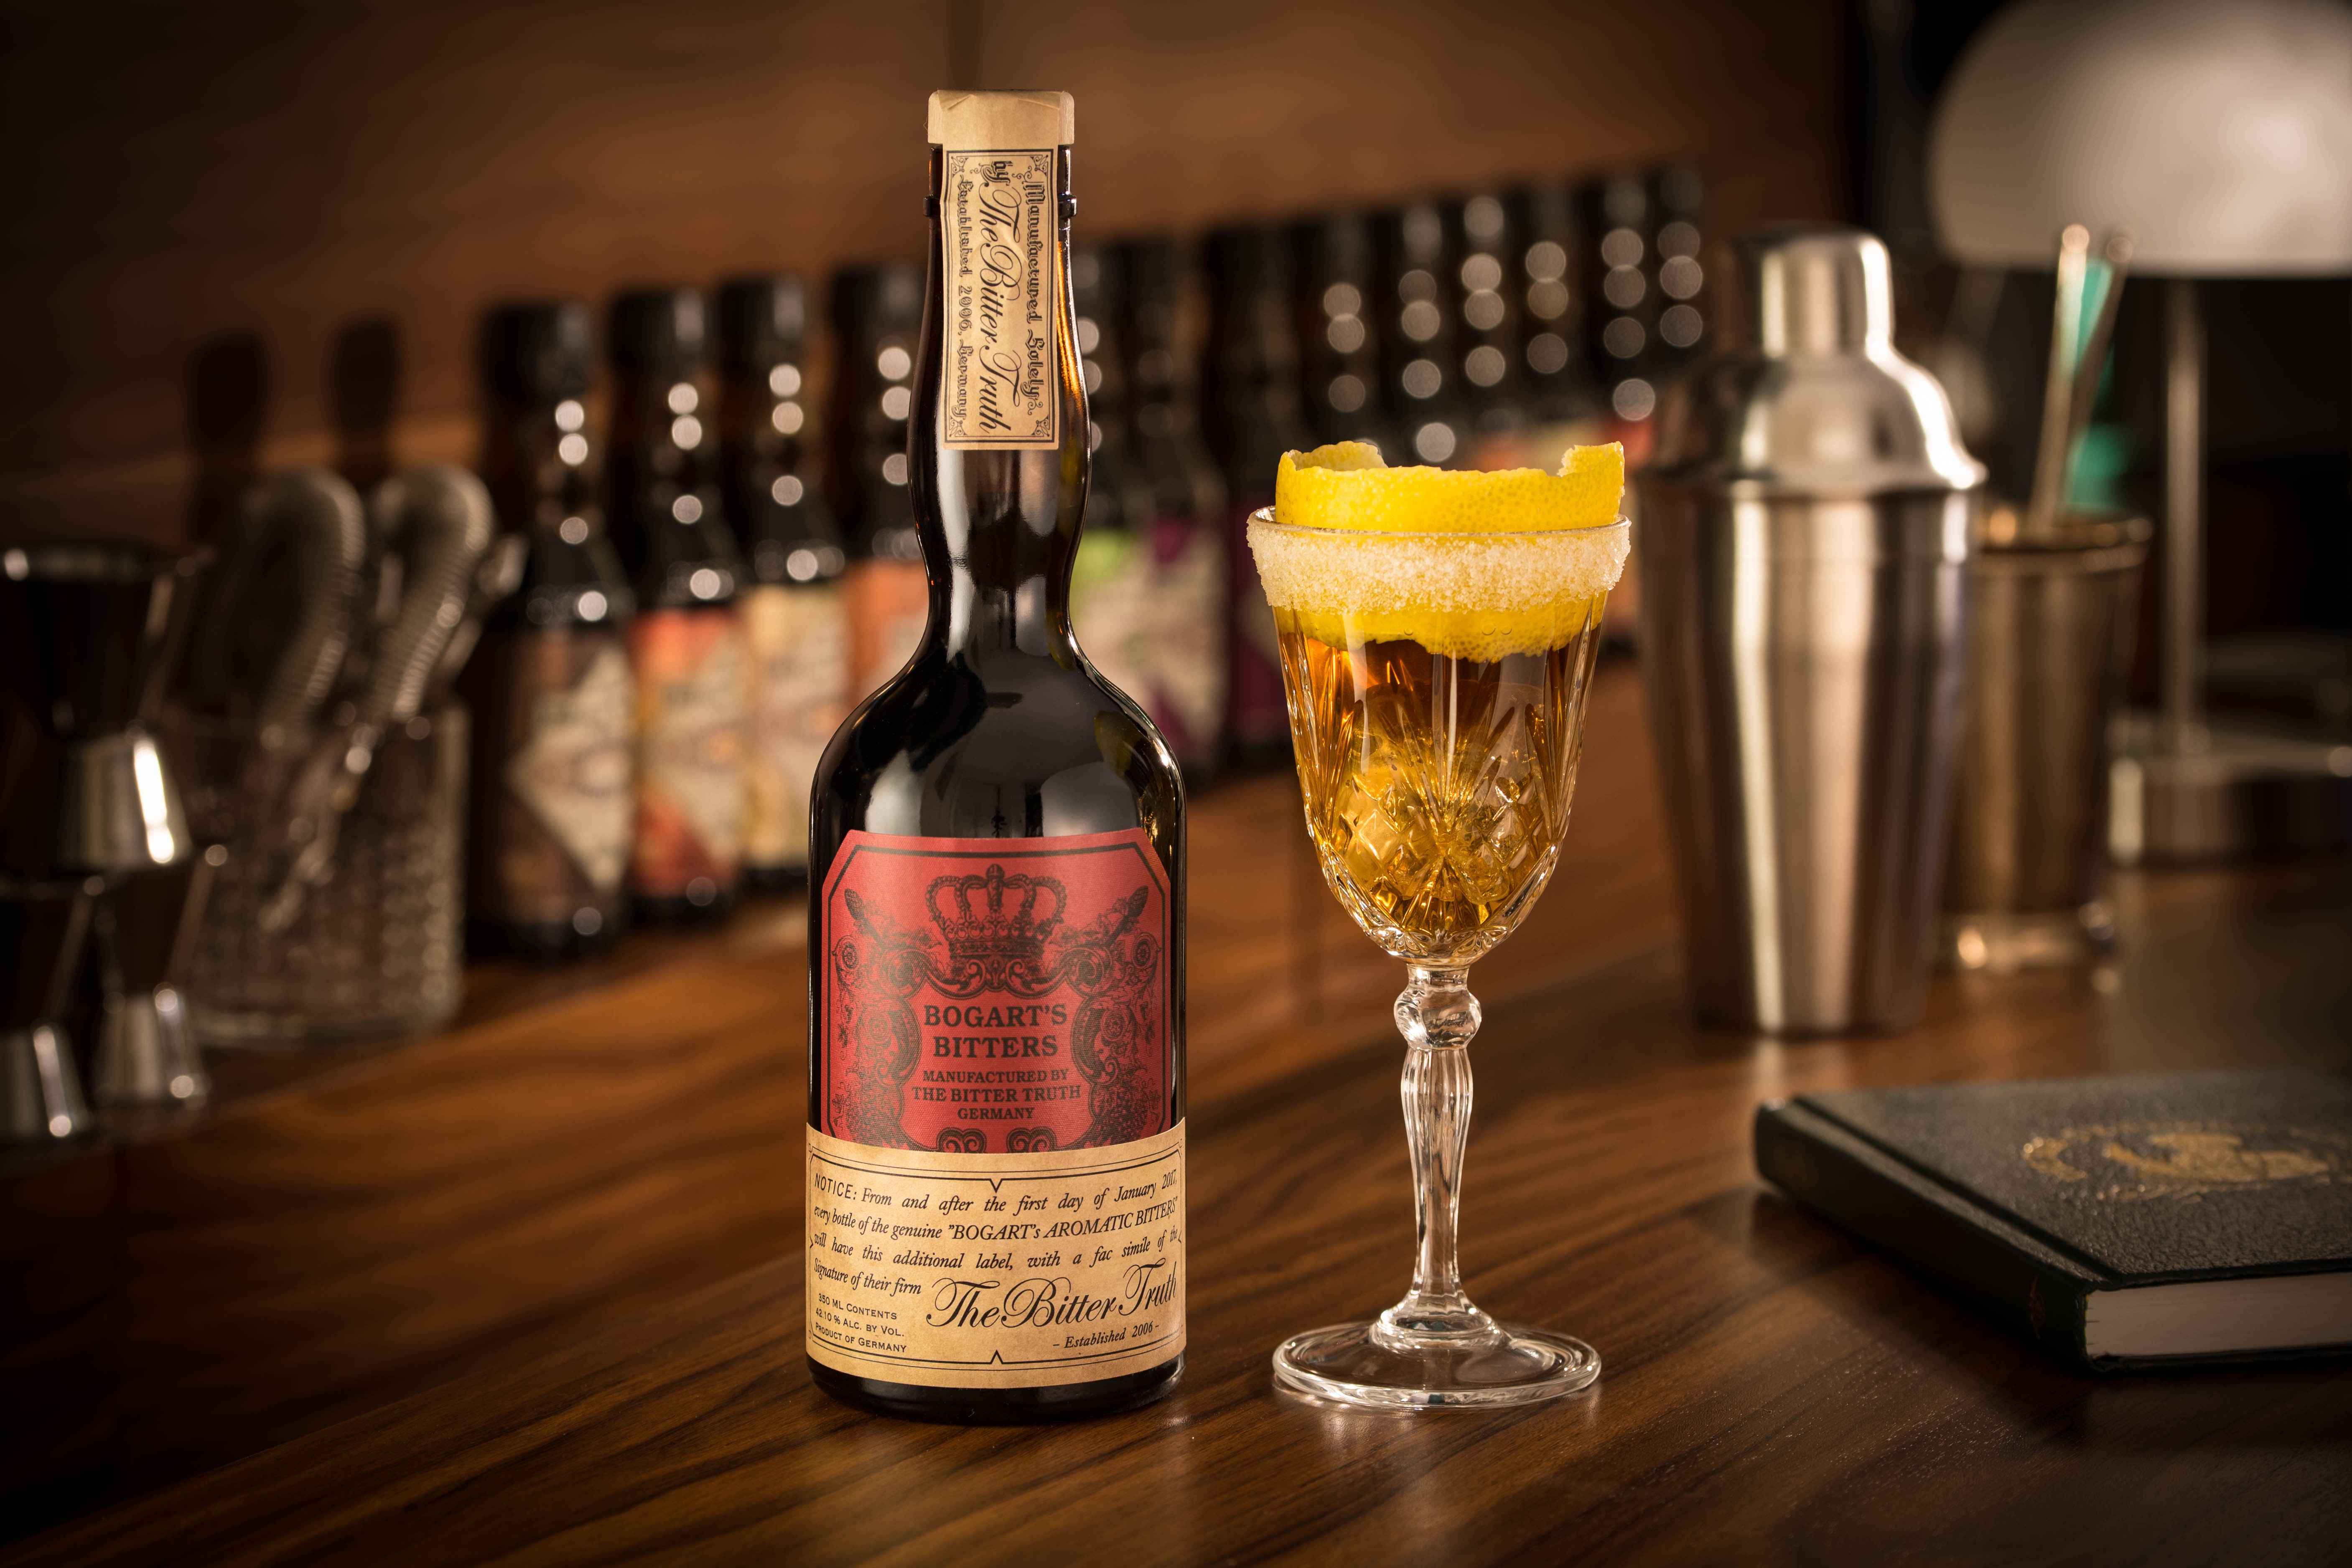 The Bitter Truth Bogarts Bitters with Brandy Crusta